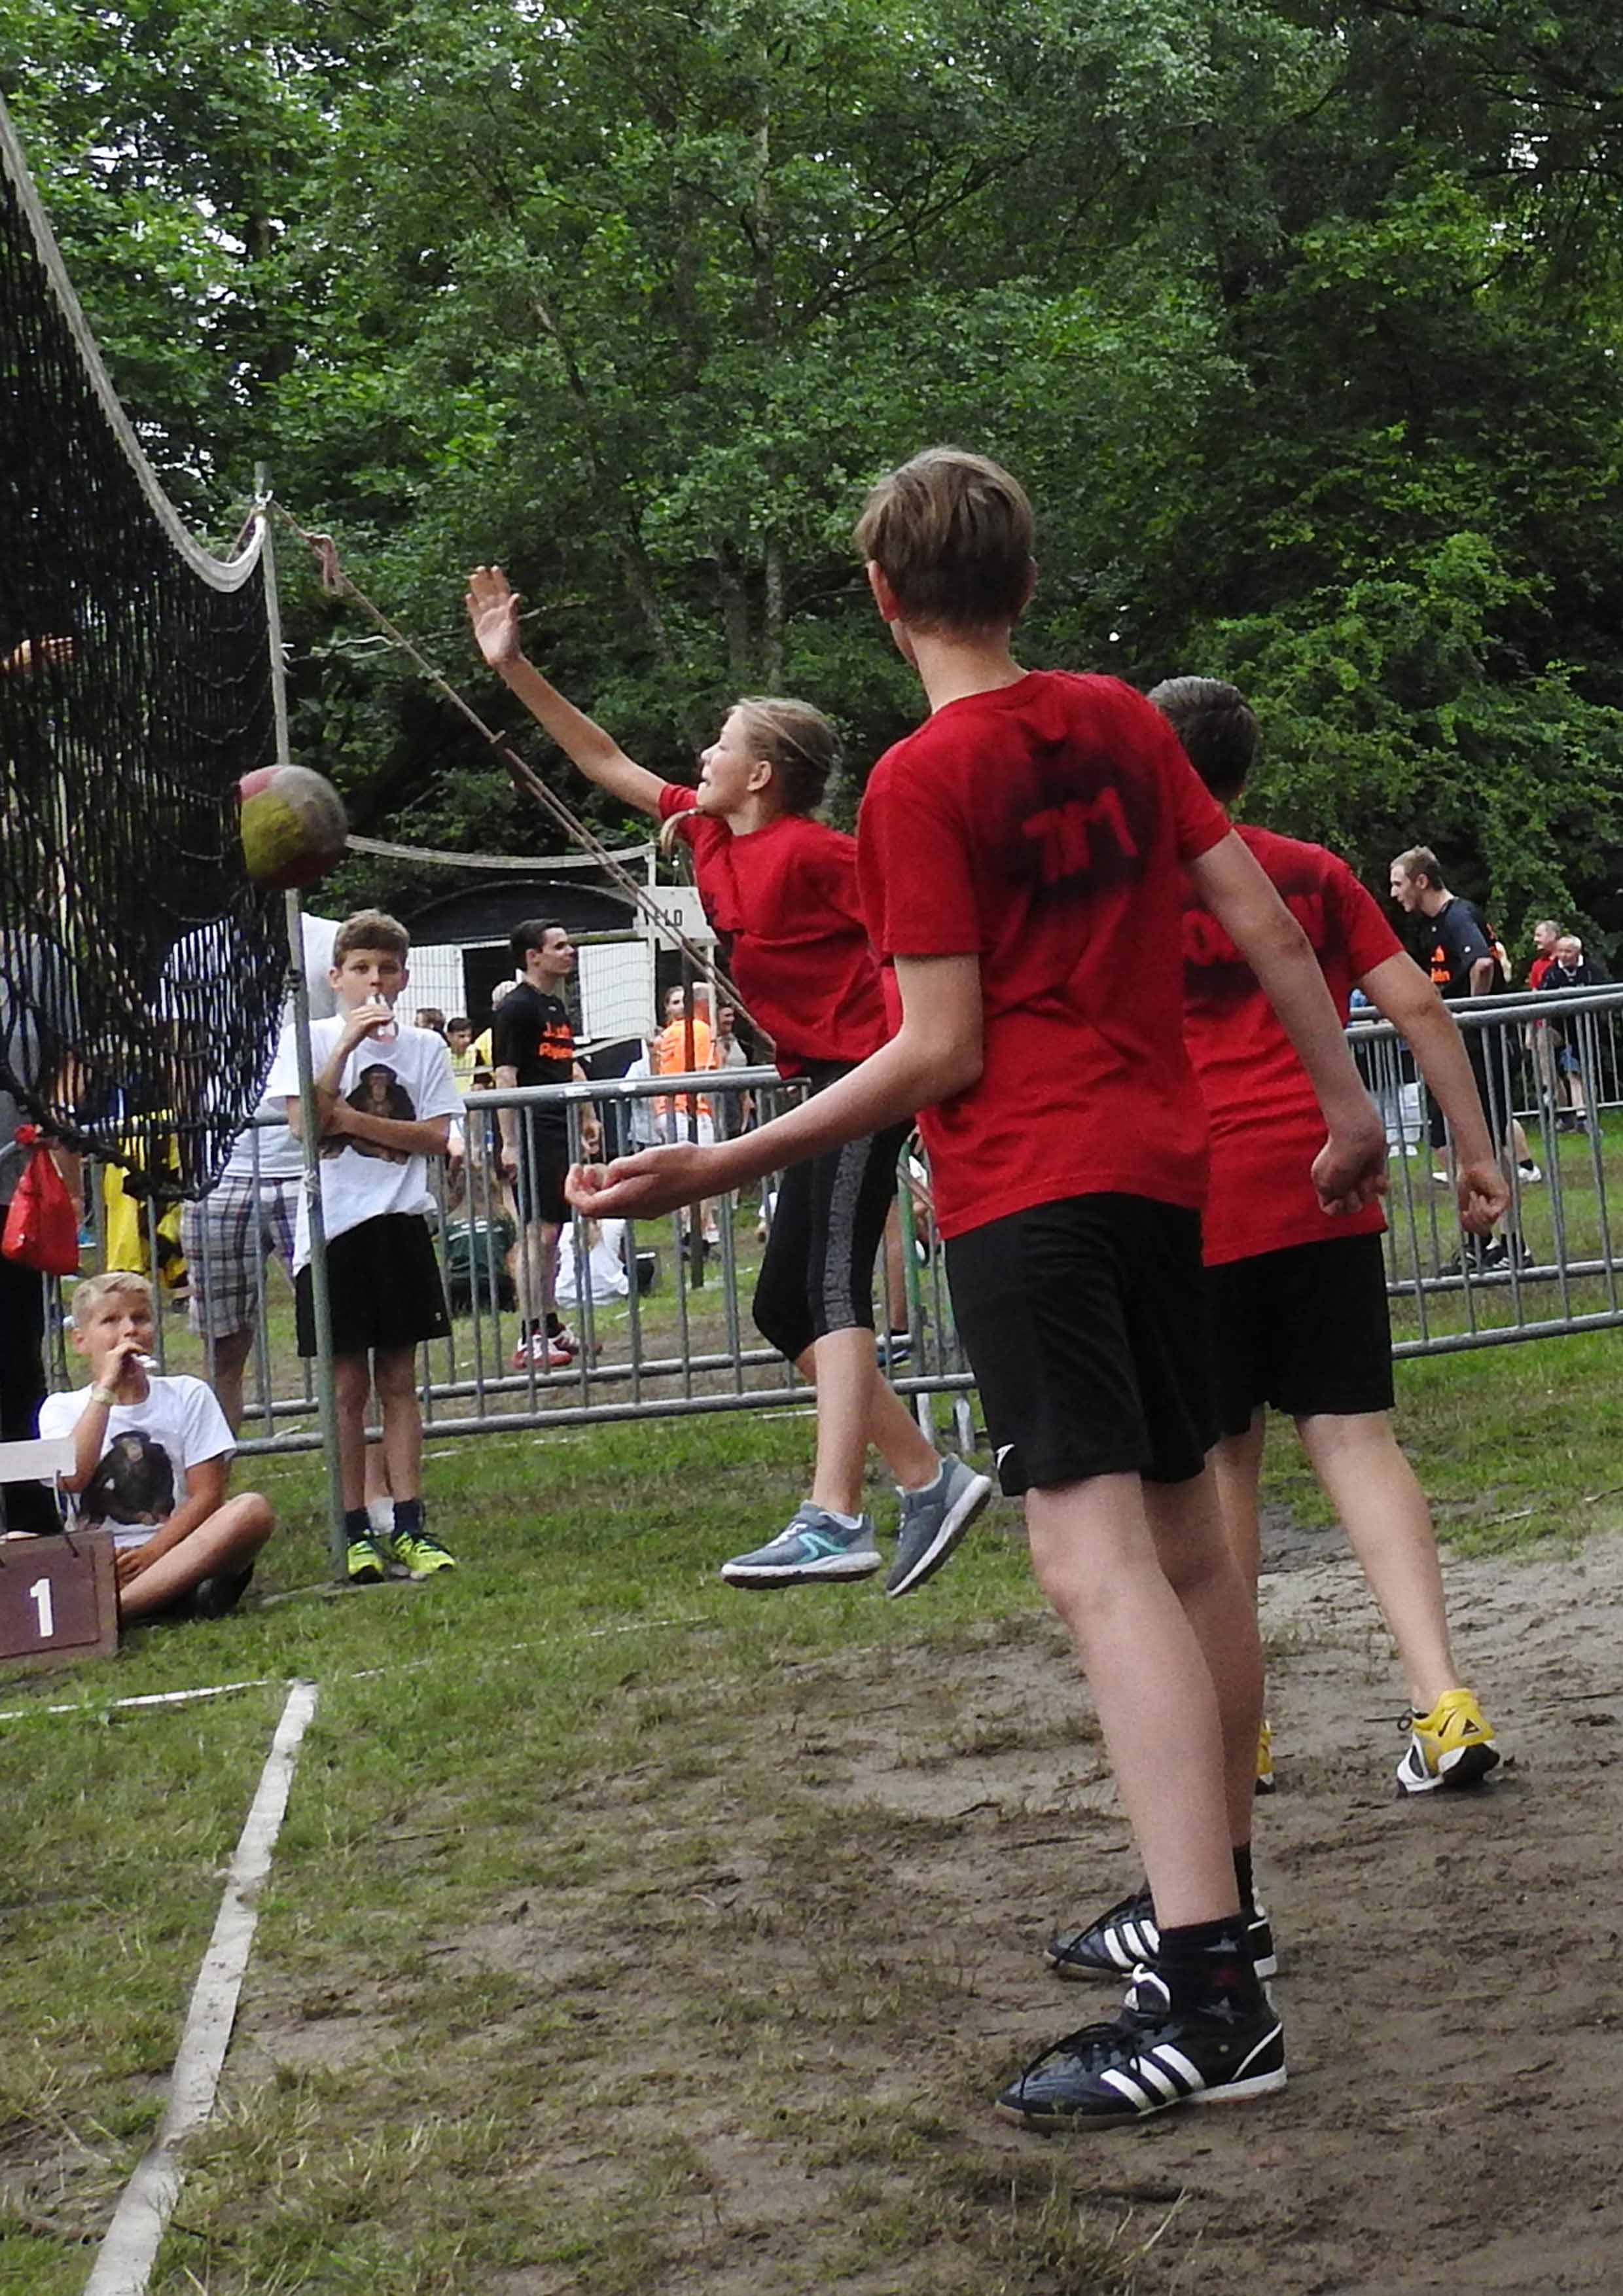 2017-06-29_BB_Straatvolleybal (41)